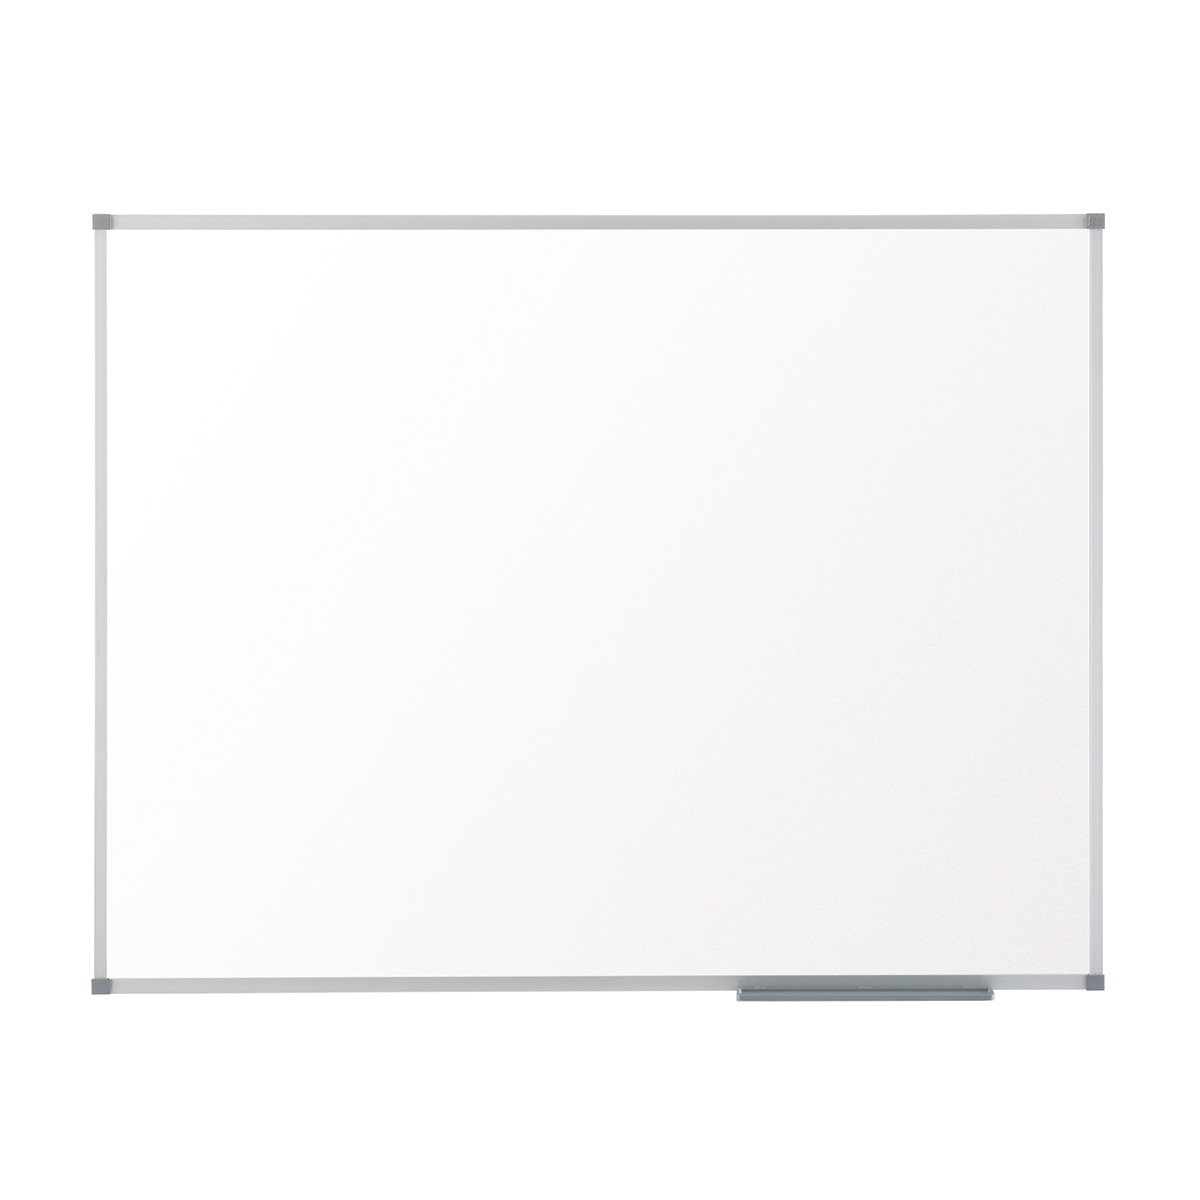 Nobo 1902649 Classic Steel Magnetic Whiteboard 2100 x 1200mm